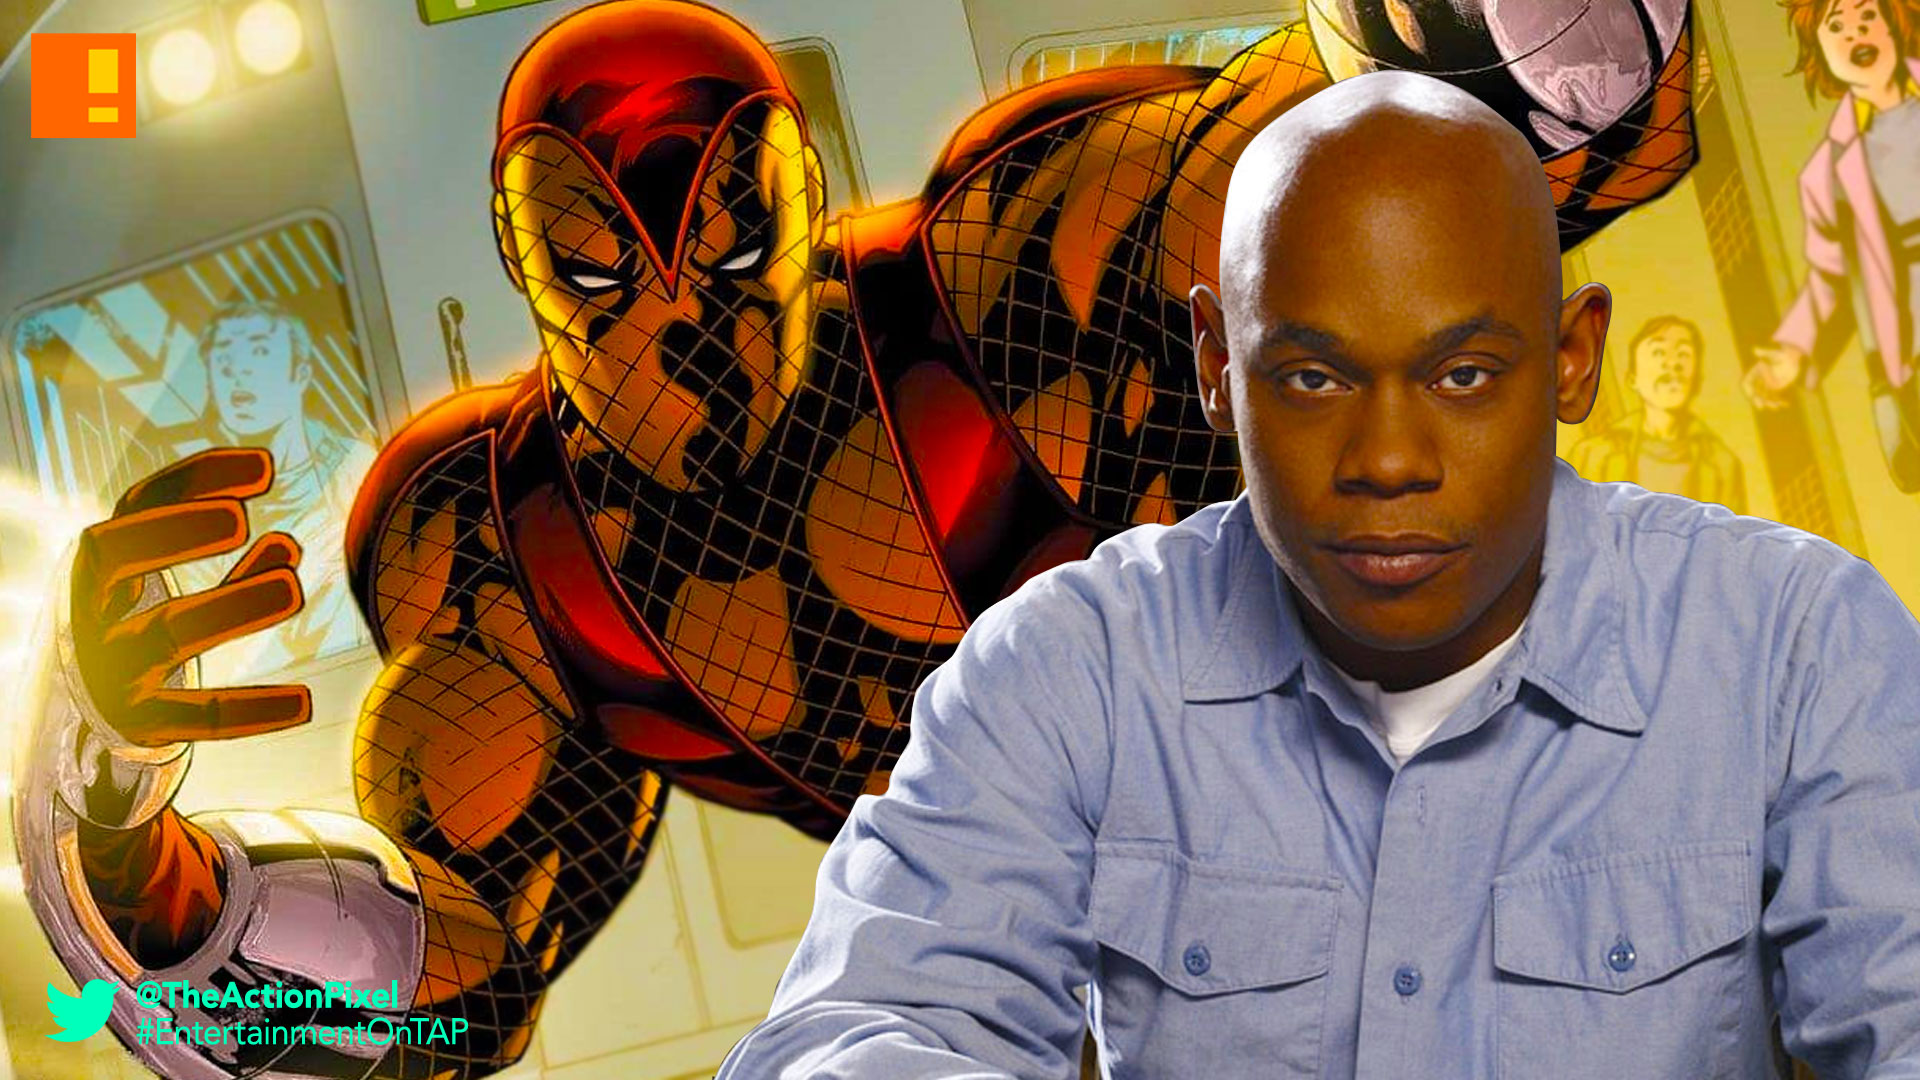 bokeem woodbine, shocker, spider-man, homecoming, spider-man: homecoming, spiderman, comics, marvel, marvel studios, sony, sony pictures,